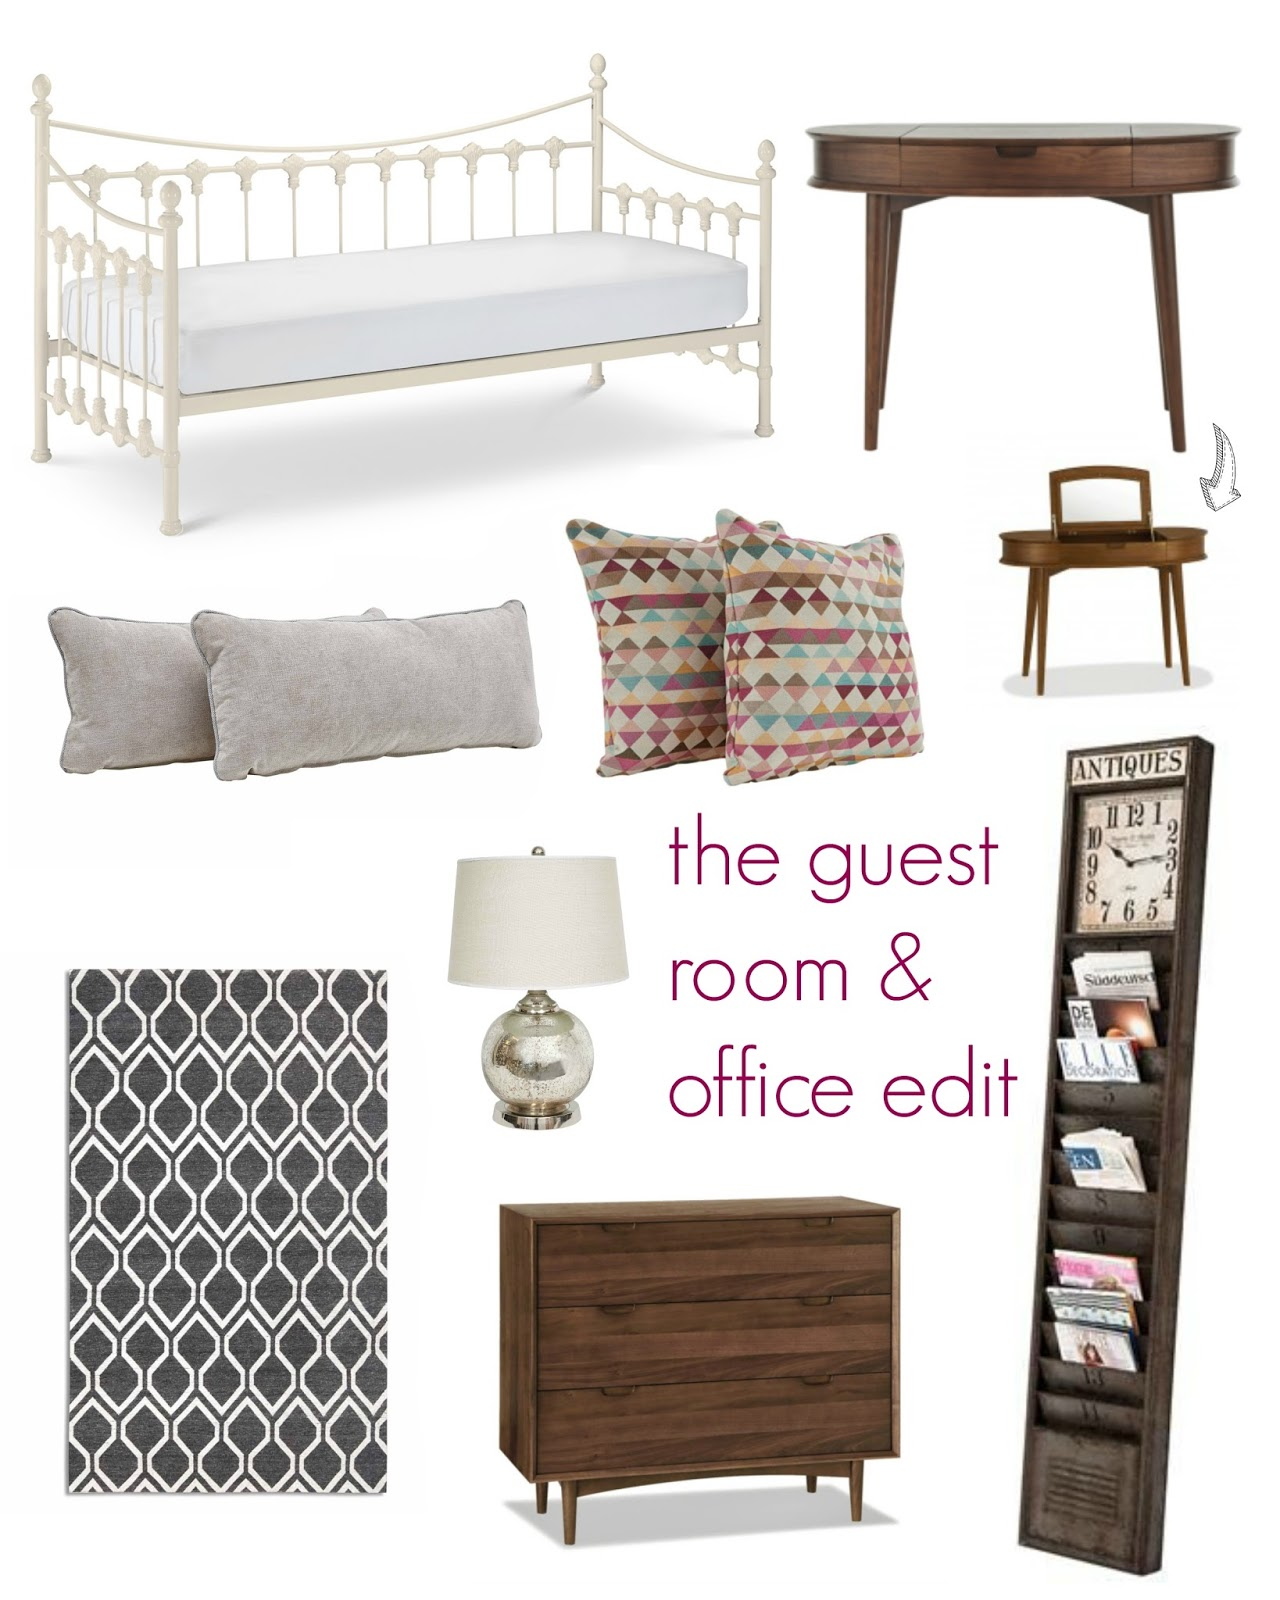 bedroom chairs furniture village adirondack uk v i buys how to create the perfect guest room and